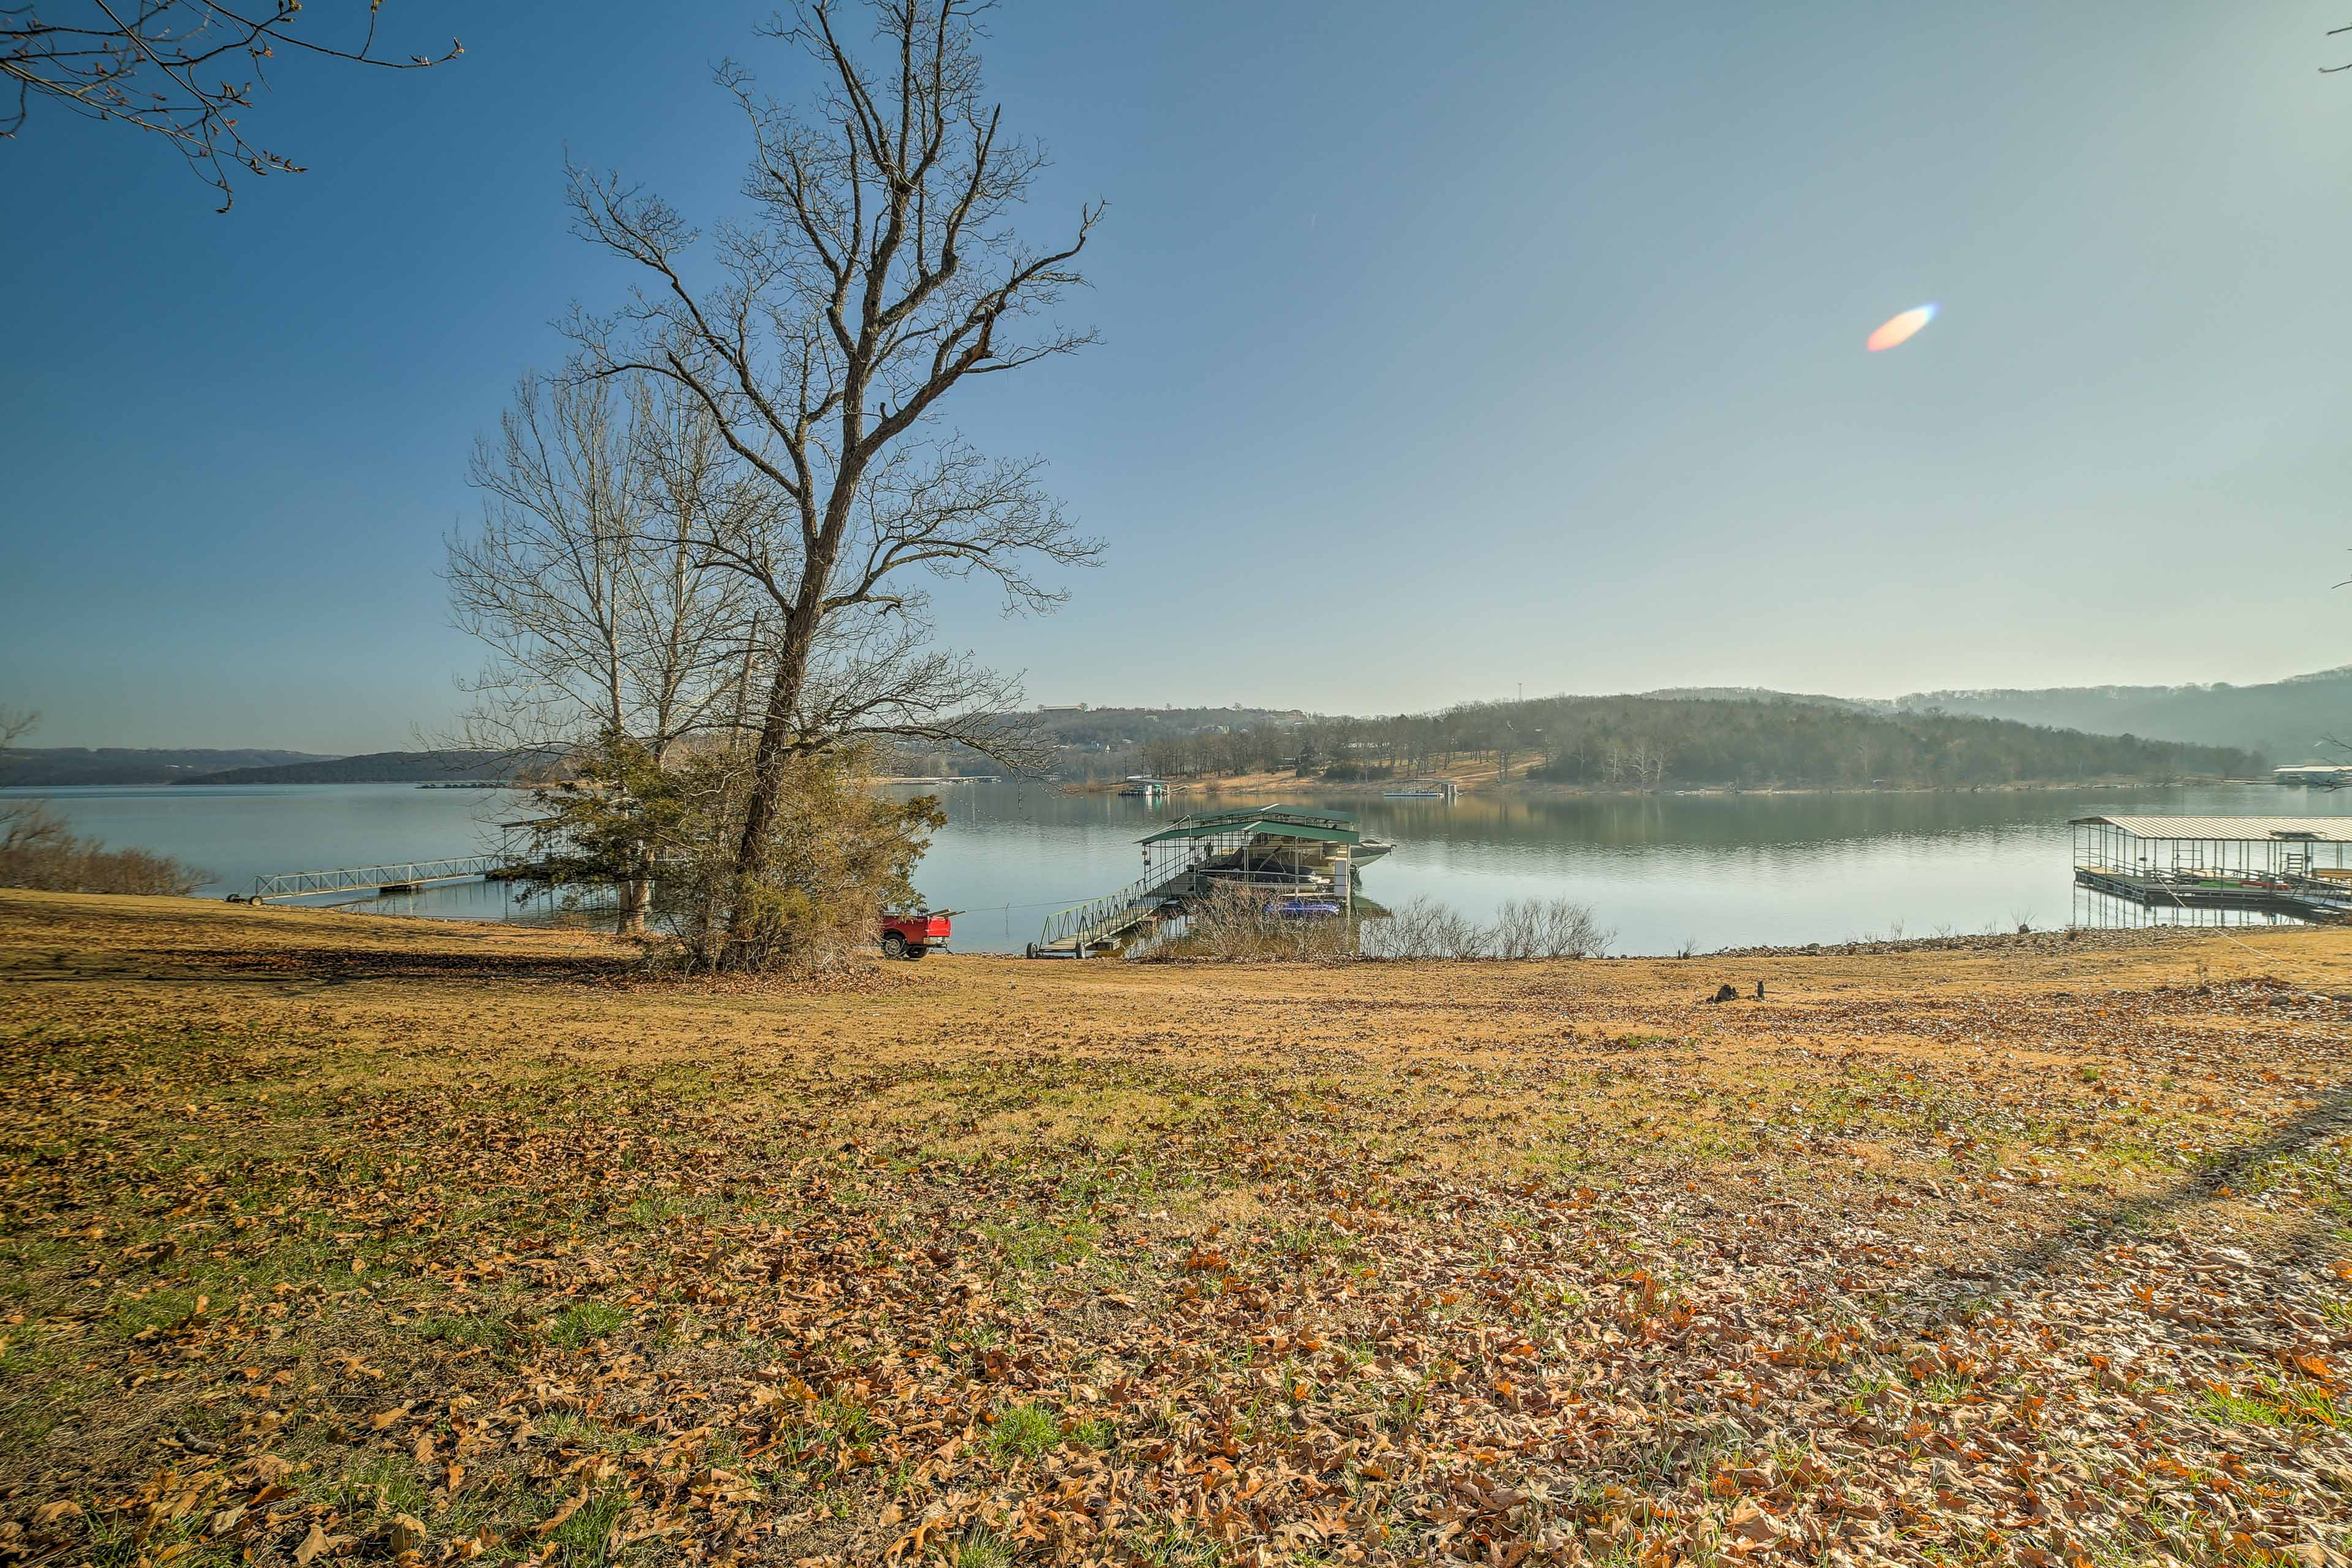 This 4-bedroom, 2-bath home with stunning lake views is perfect for 10 guests.